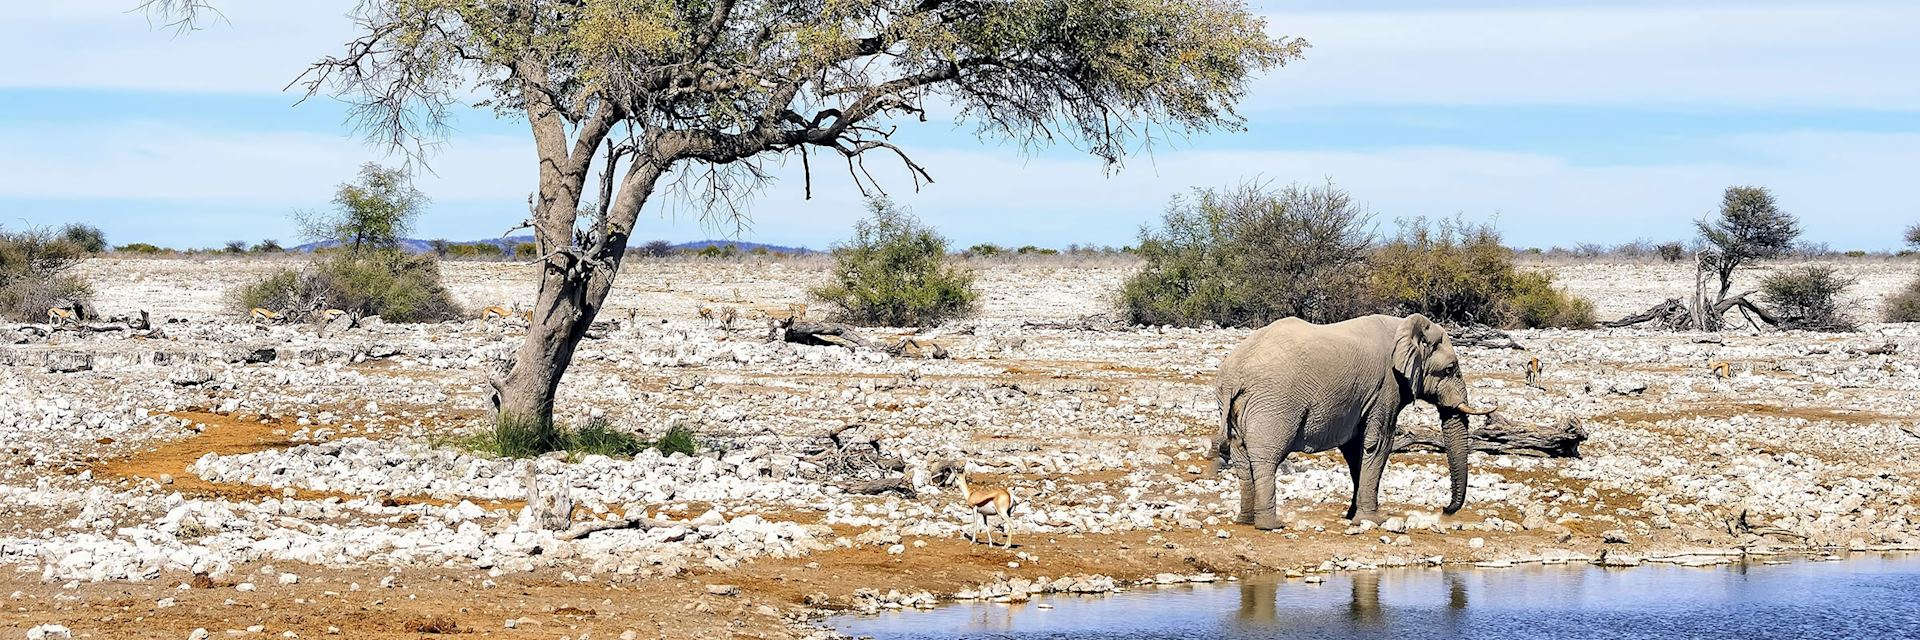 Elephant at waterhole in Etsoha National Park